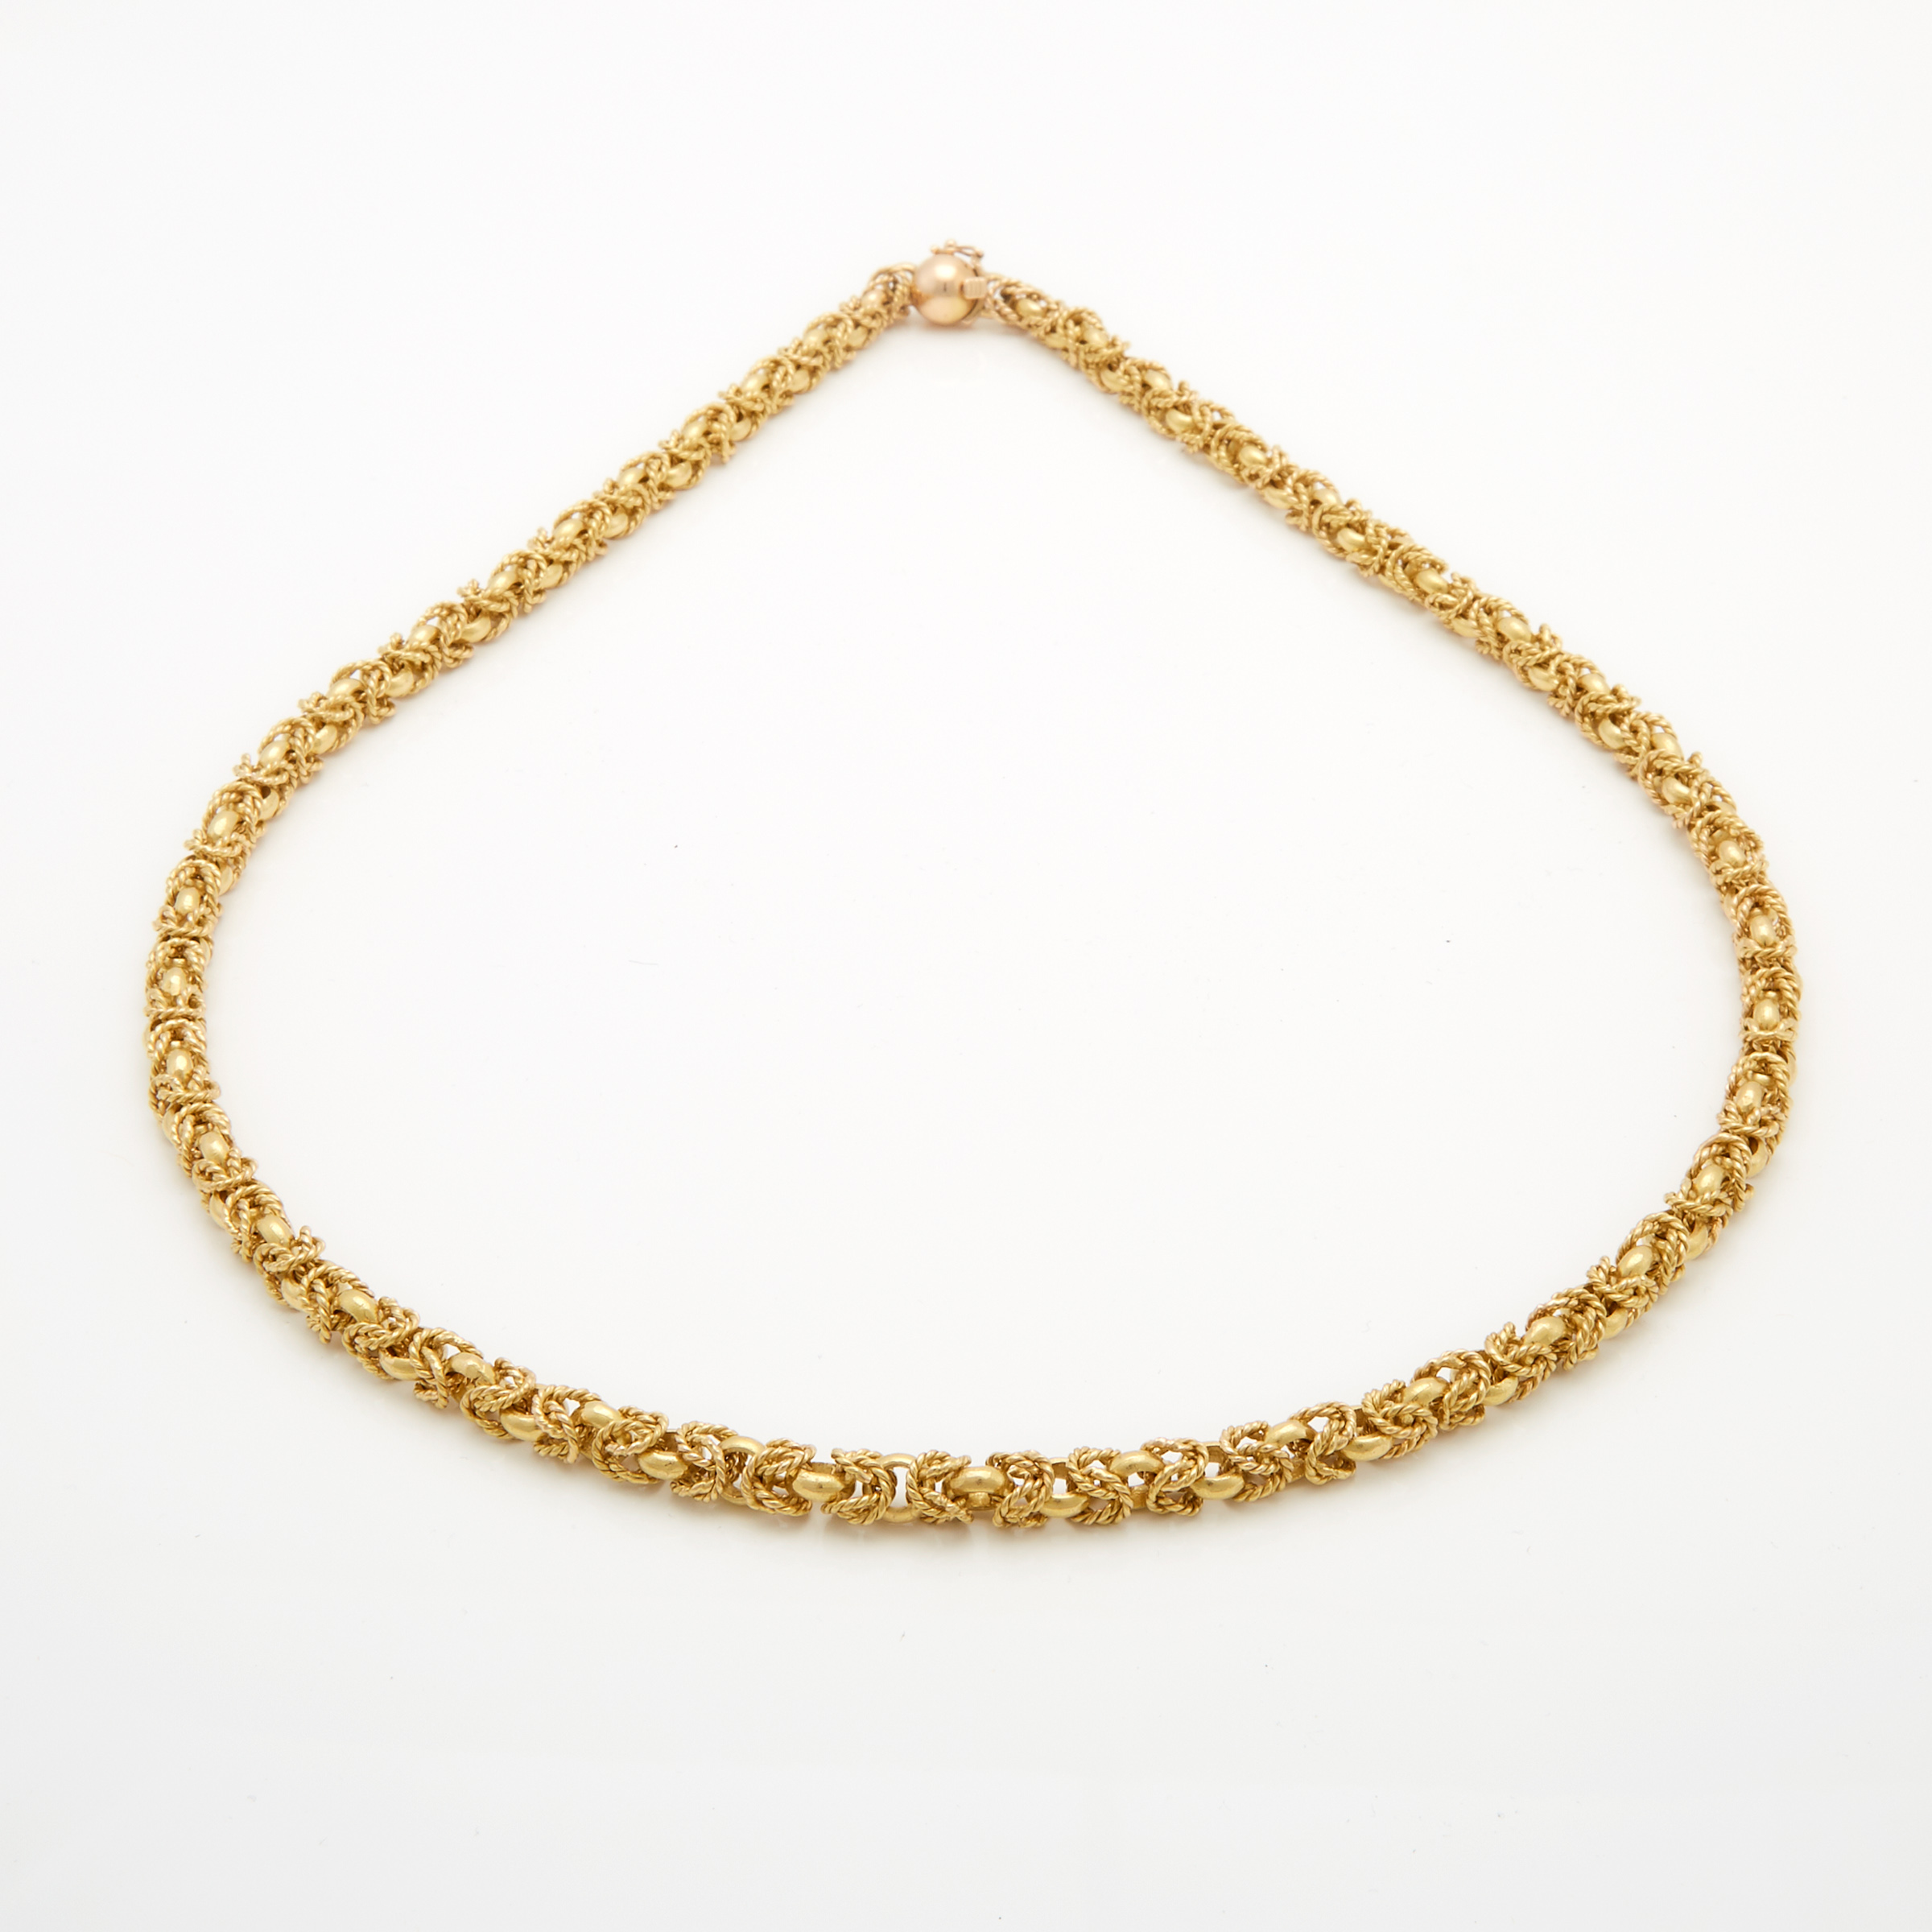 18k Yellow Gold Byzantine Link Chain